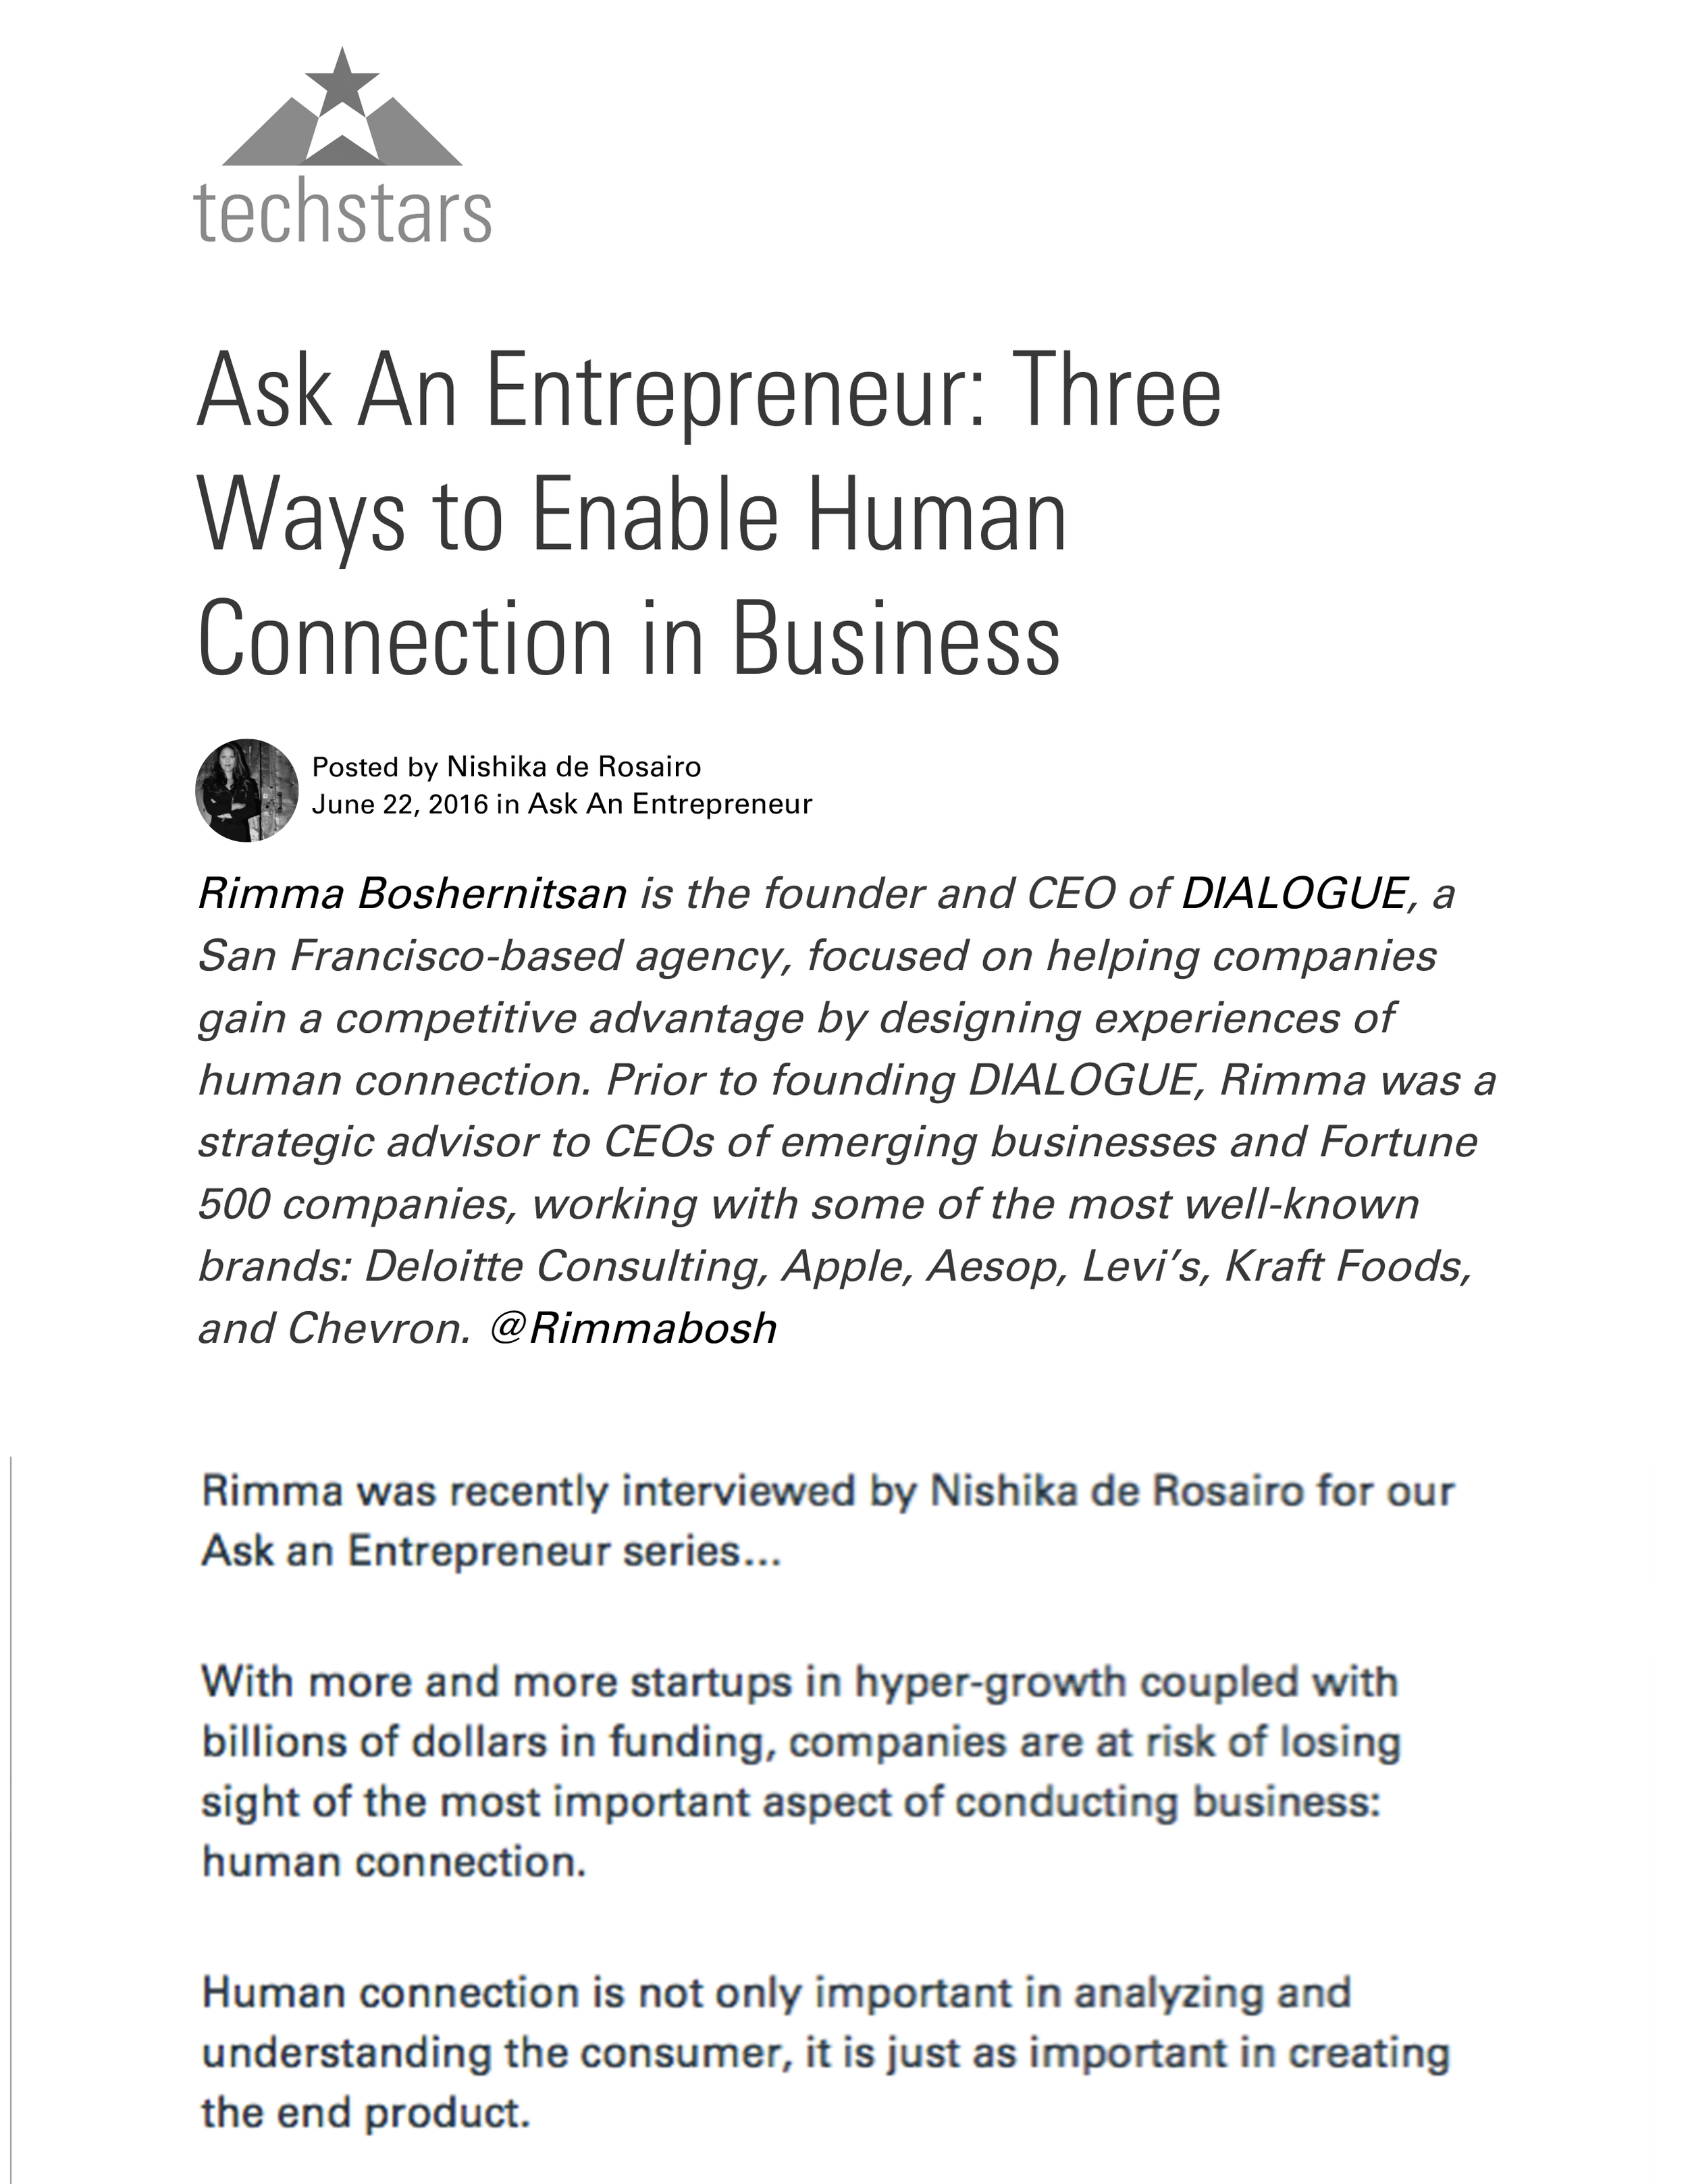 TECH STARS // ASK AN ENTREPRENEUR